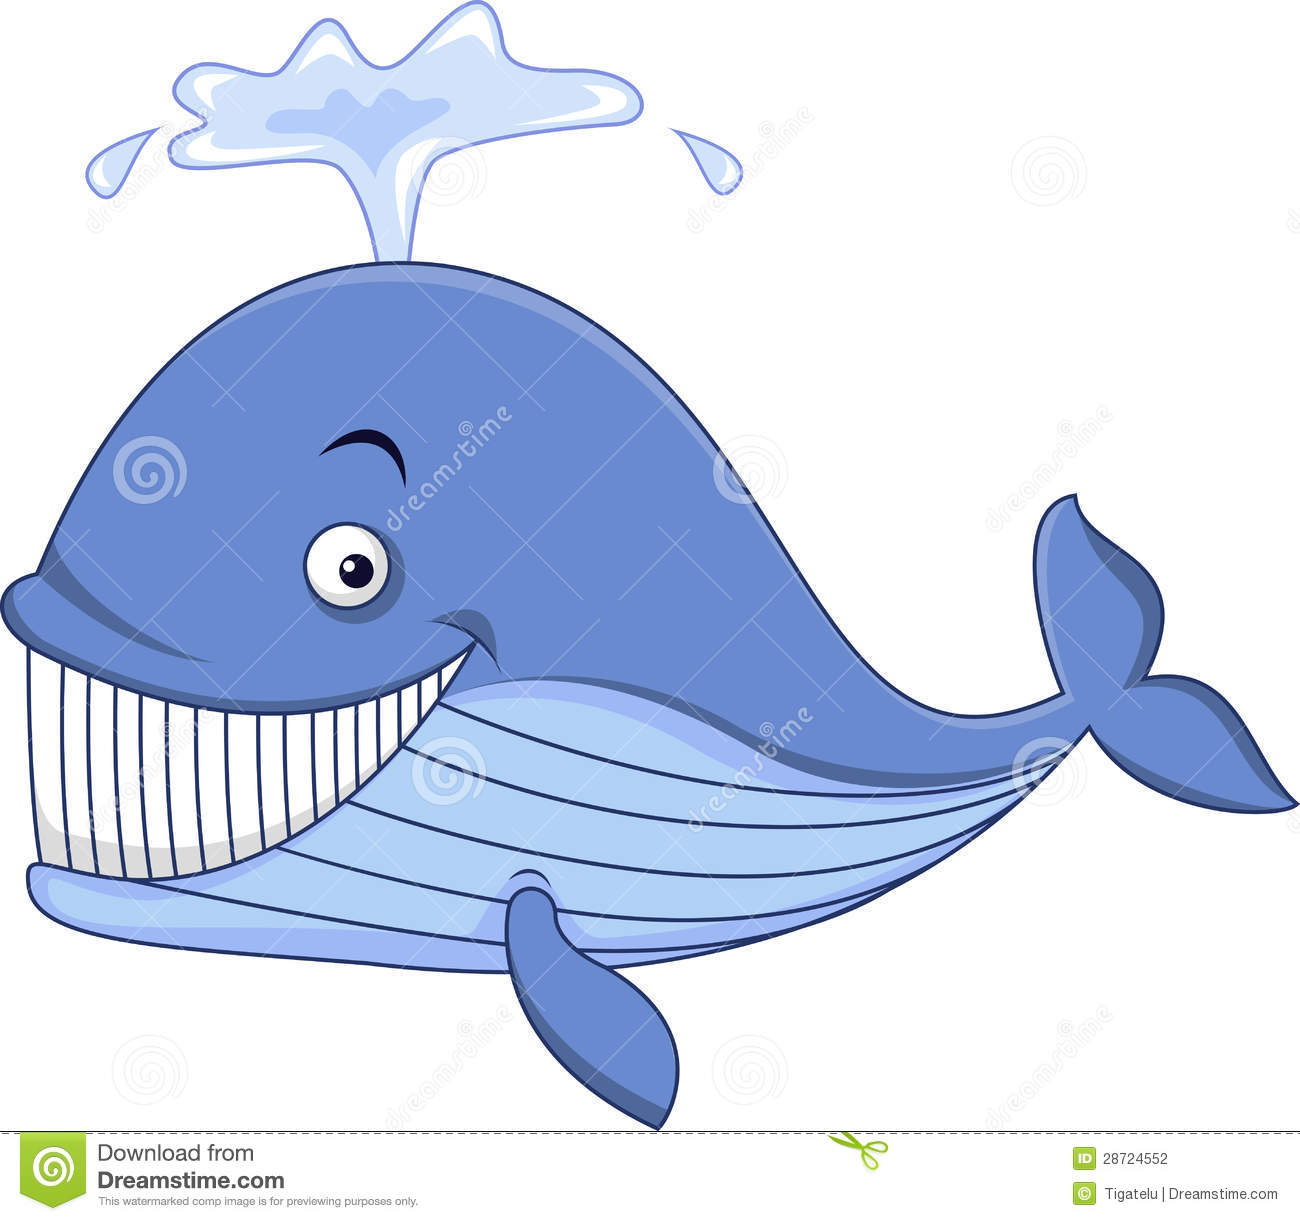 Blue whale cartoon stock vector. Illustration of mammal ...